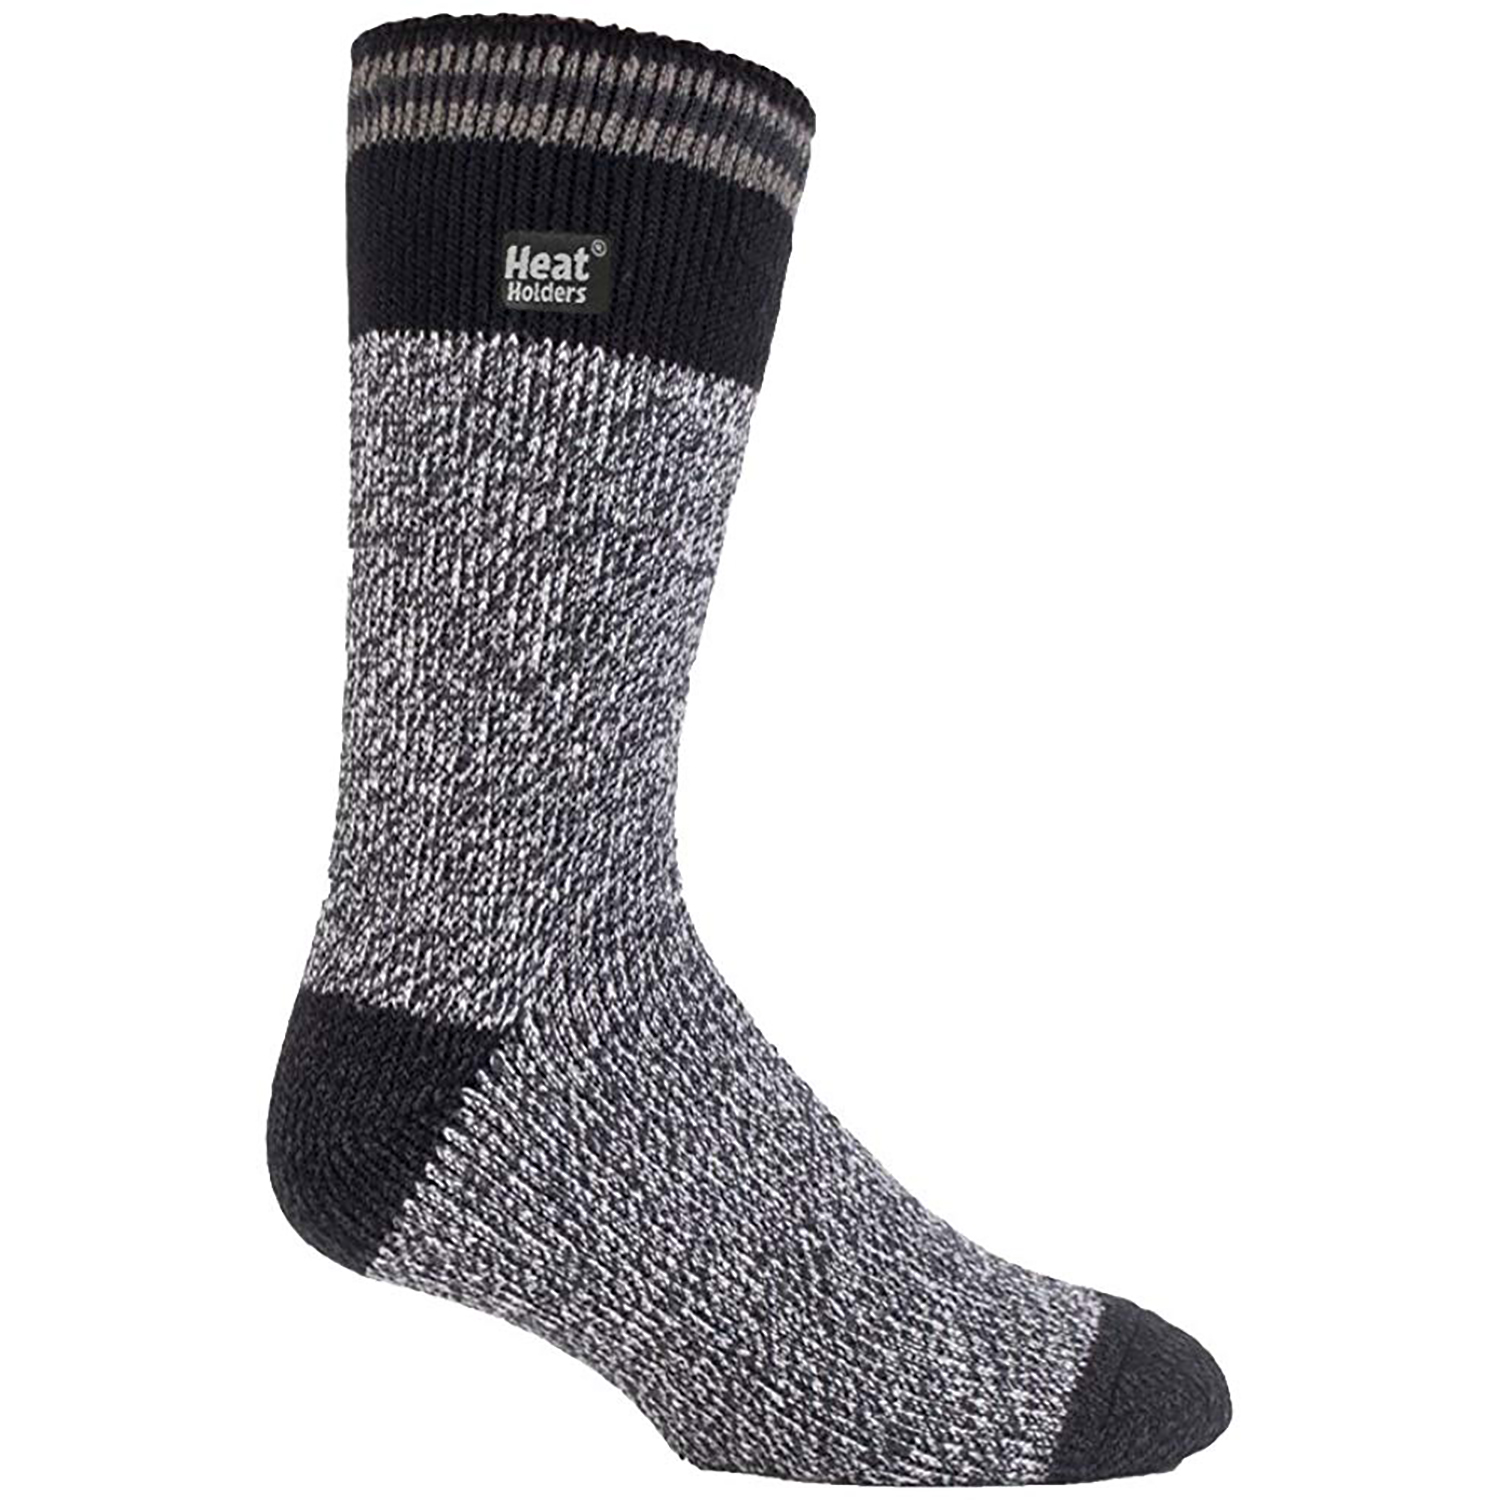 Beat Gifts for Him: Heat Holders Thermal Socks